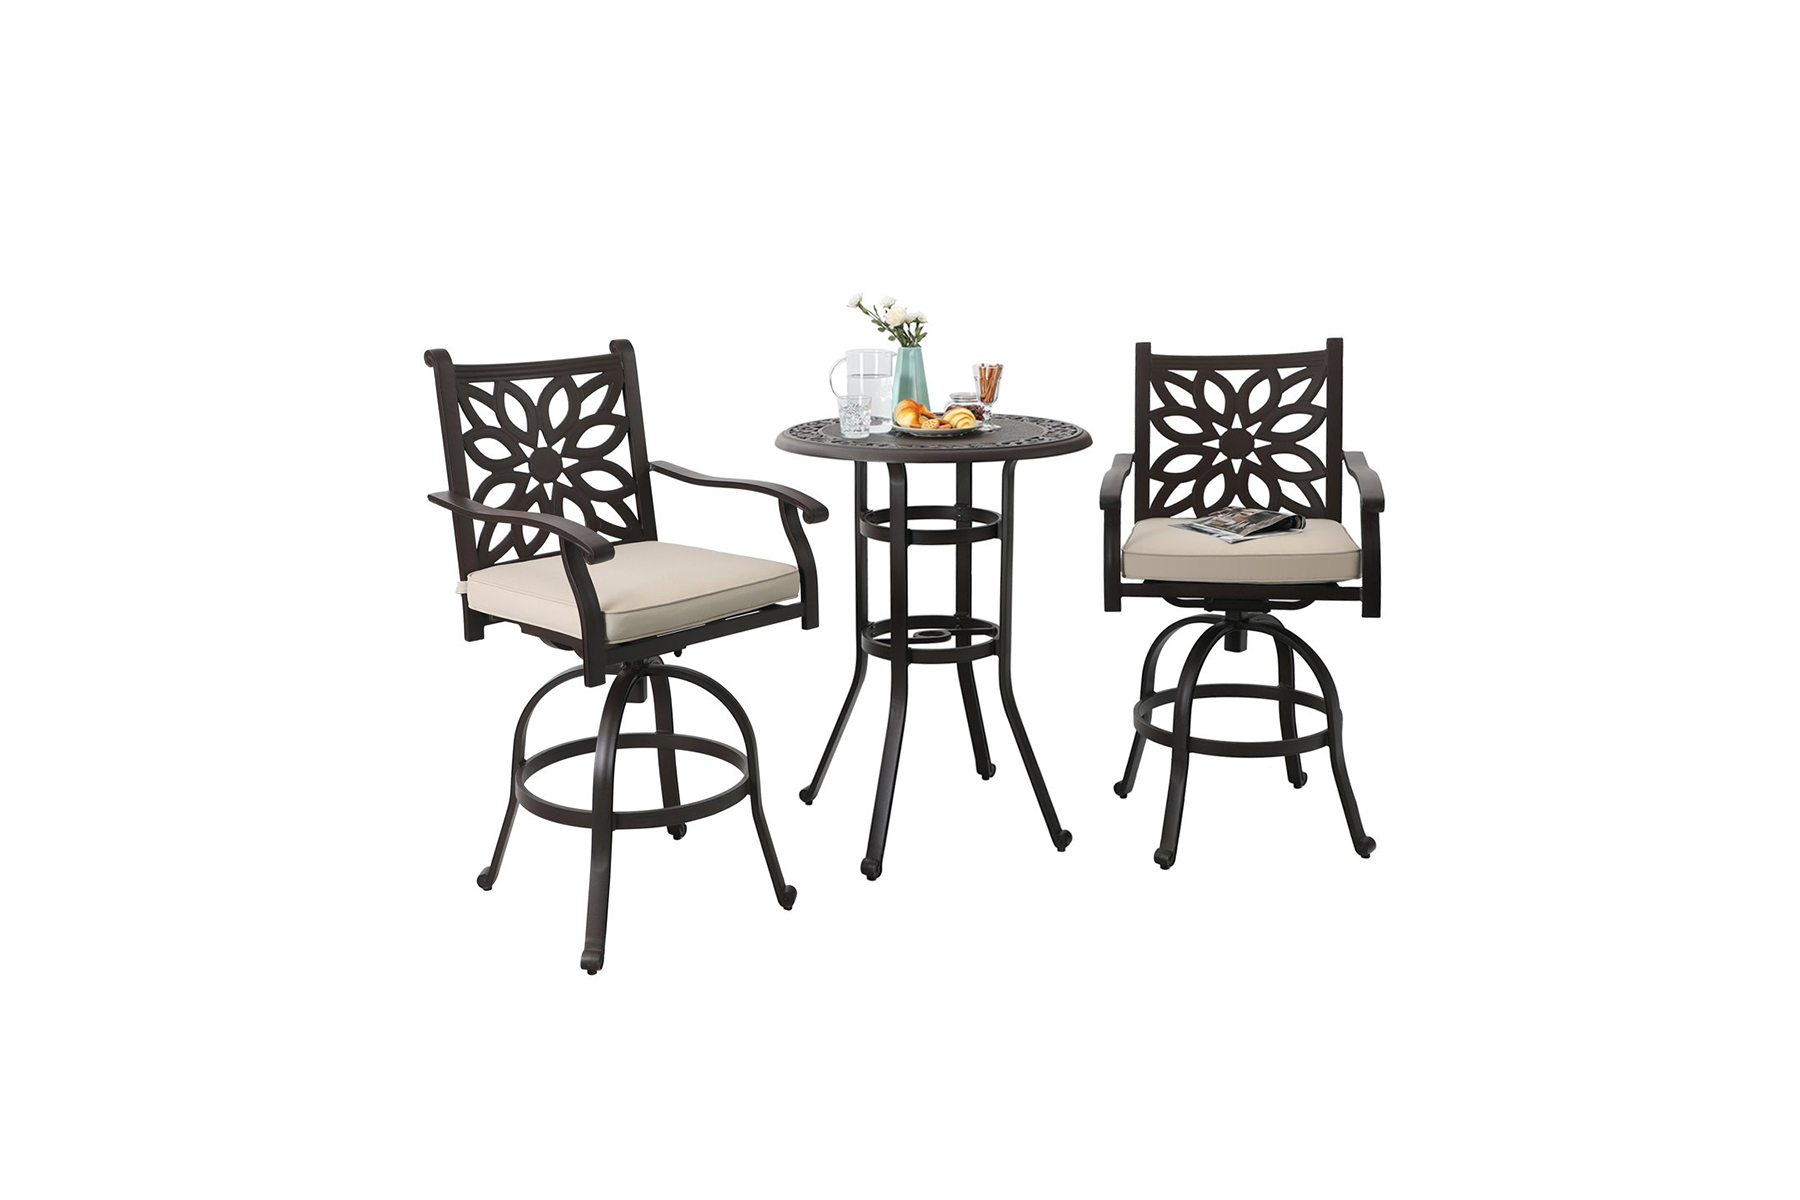 Peachy The Best Places To Buy Outdoor Furniture Online Real Simple Home Interior And Landscaping Oversignezvosmurscom